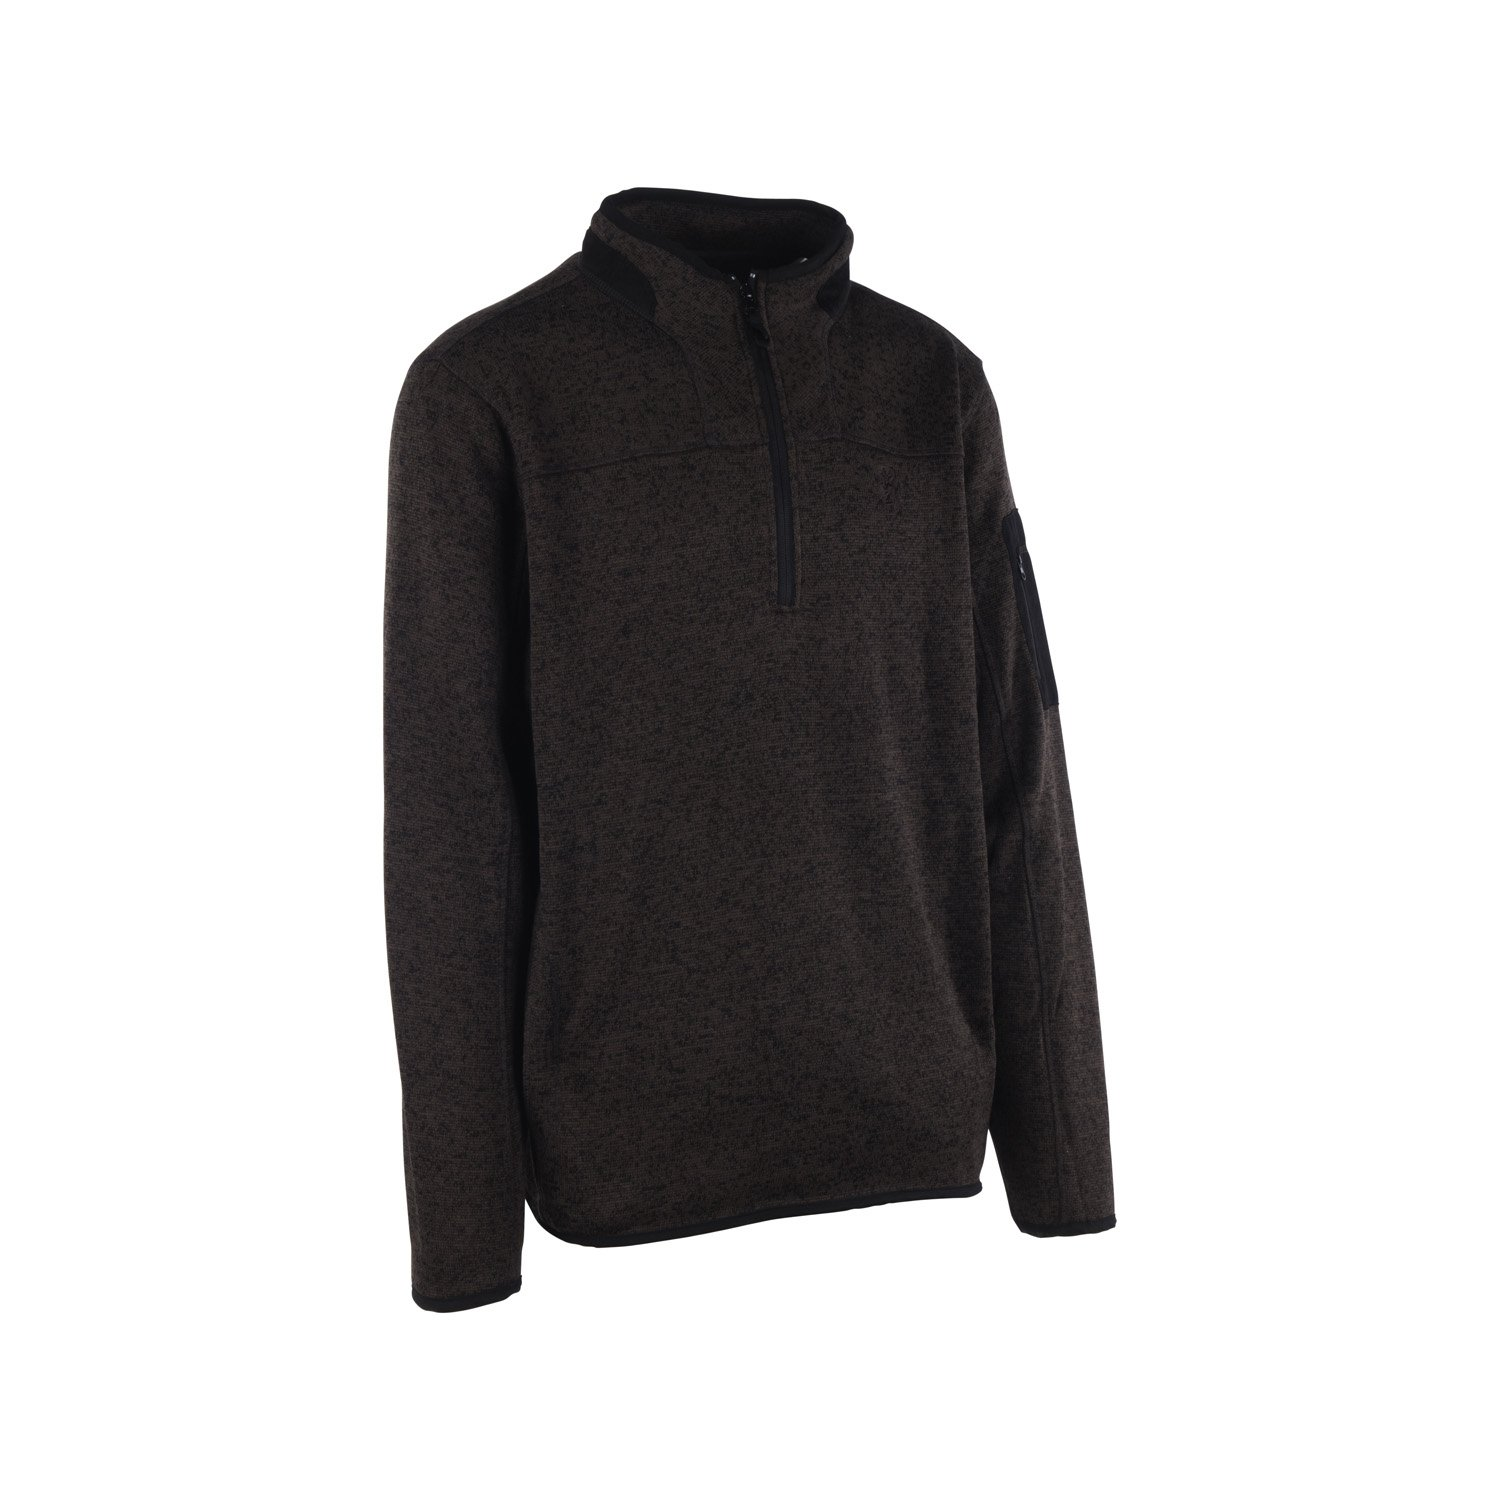 Browning Youth Laredo II 1/4 Pullover (Small, Black)